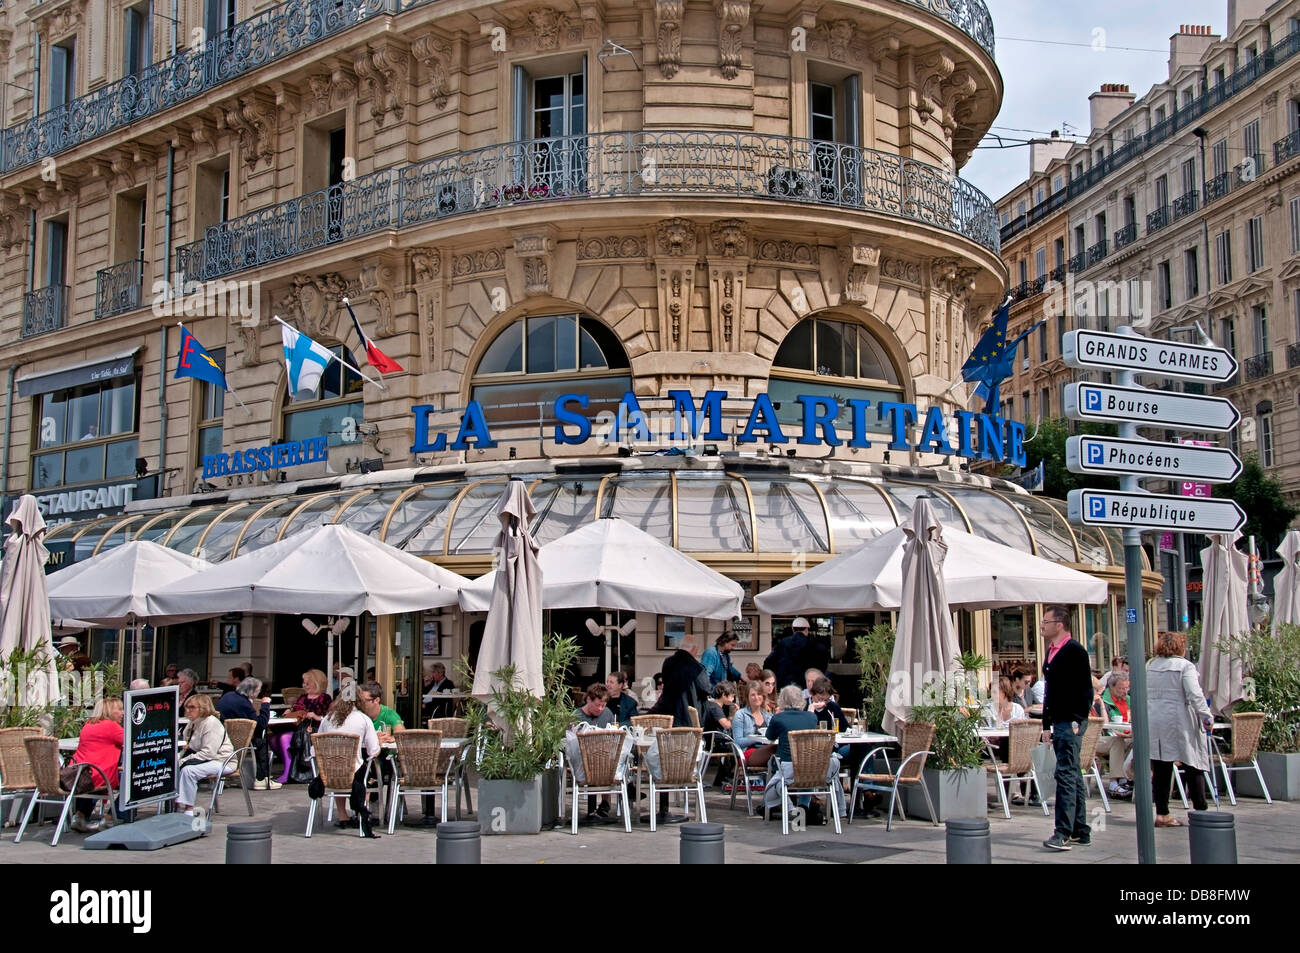 La samaritaine restaurant cafe bar pub marseilles france - Restaurant l entrecote marseille vieux port ...